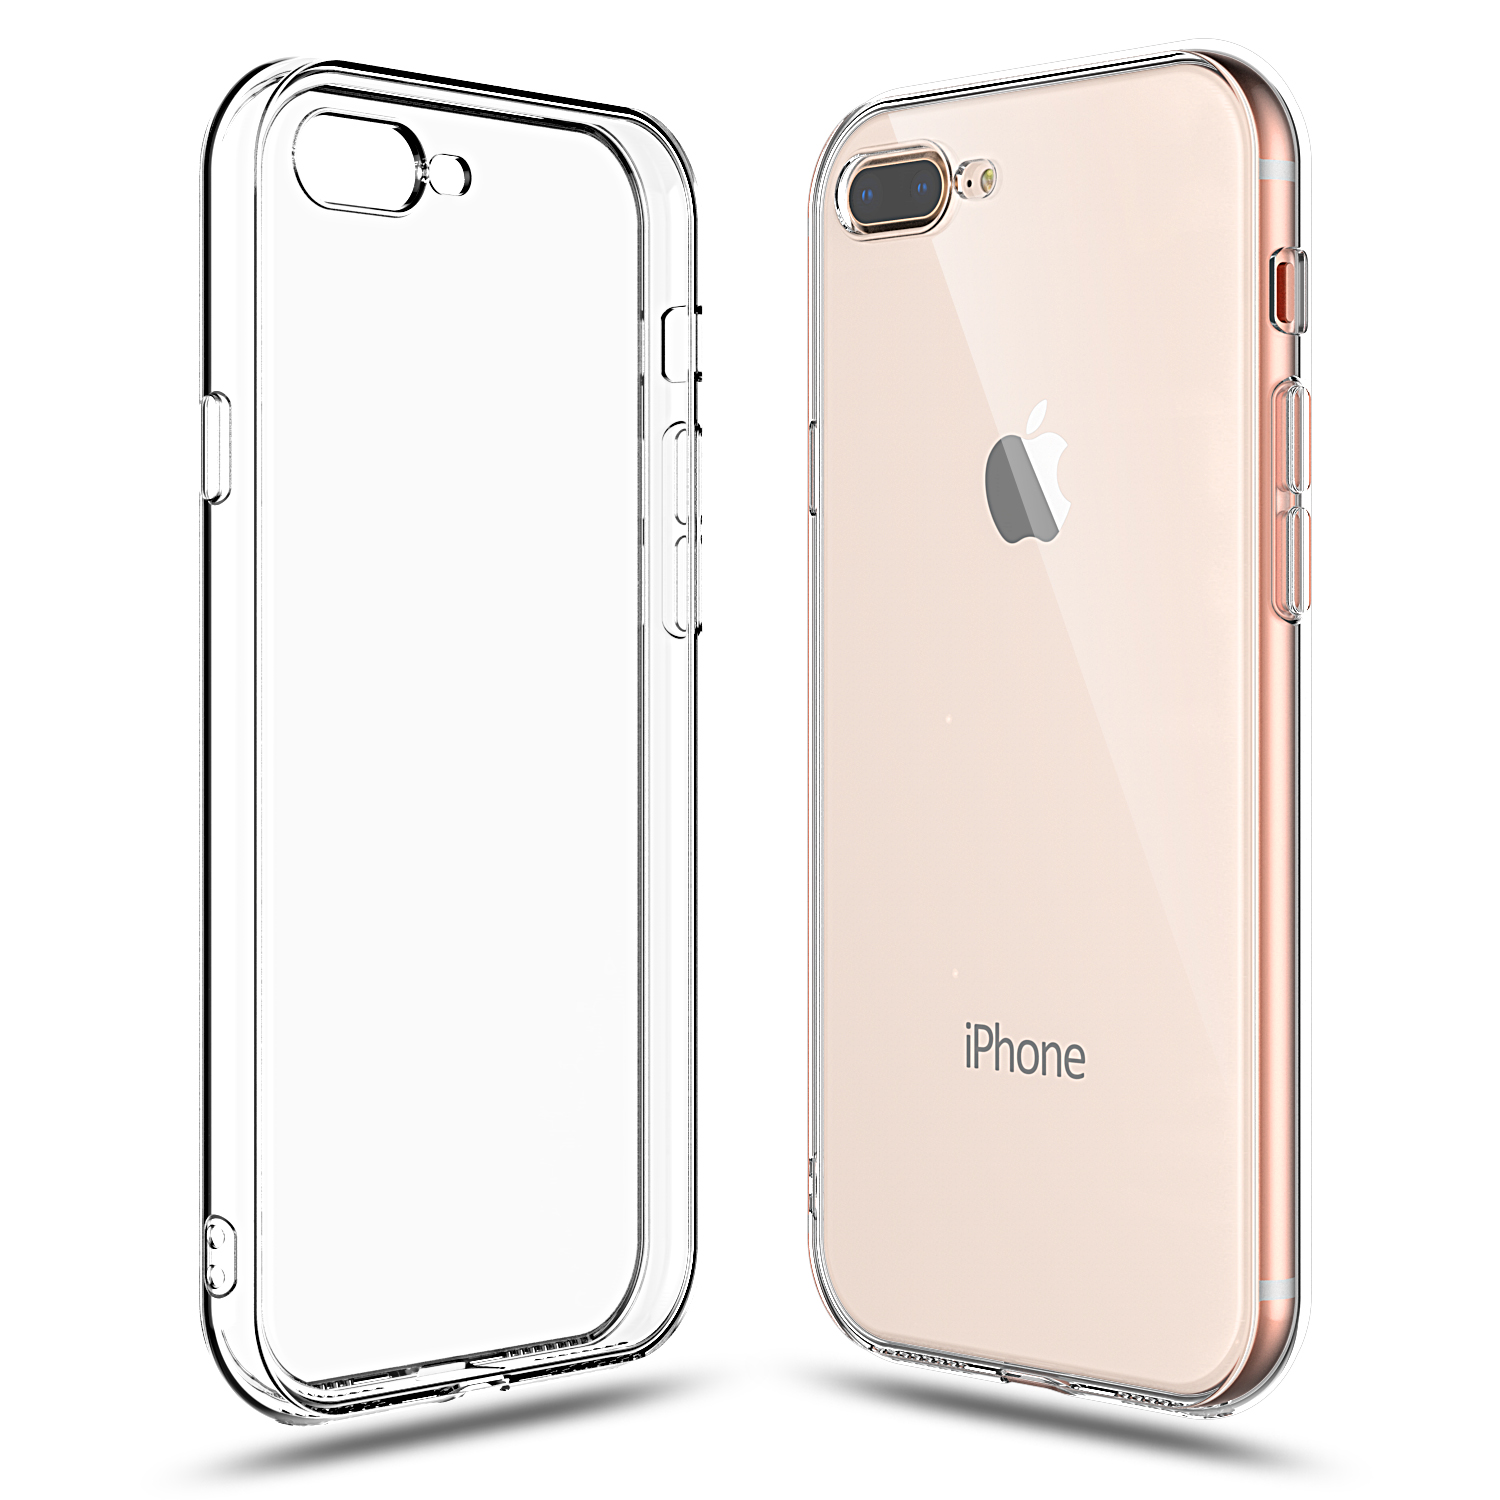 For iPhone 7 Plus, Shamo's [Crystal Clear] Case [Shock Absorption] Cover TPU Rubber Gel [Anti Scratch] Transparent Clear Back, Soft Silicone, Screen Raised Lip Protection, Impact Resistant,